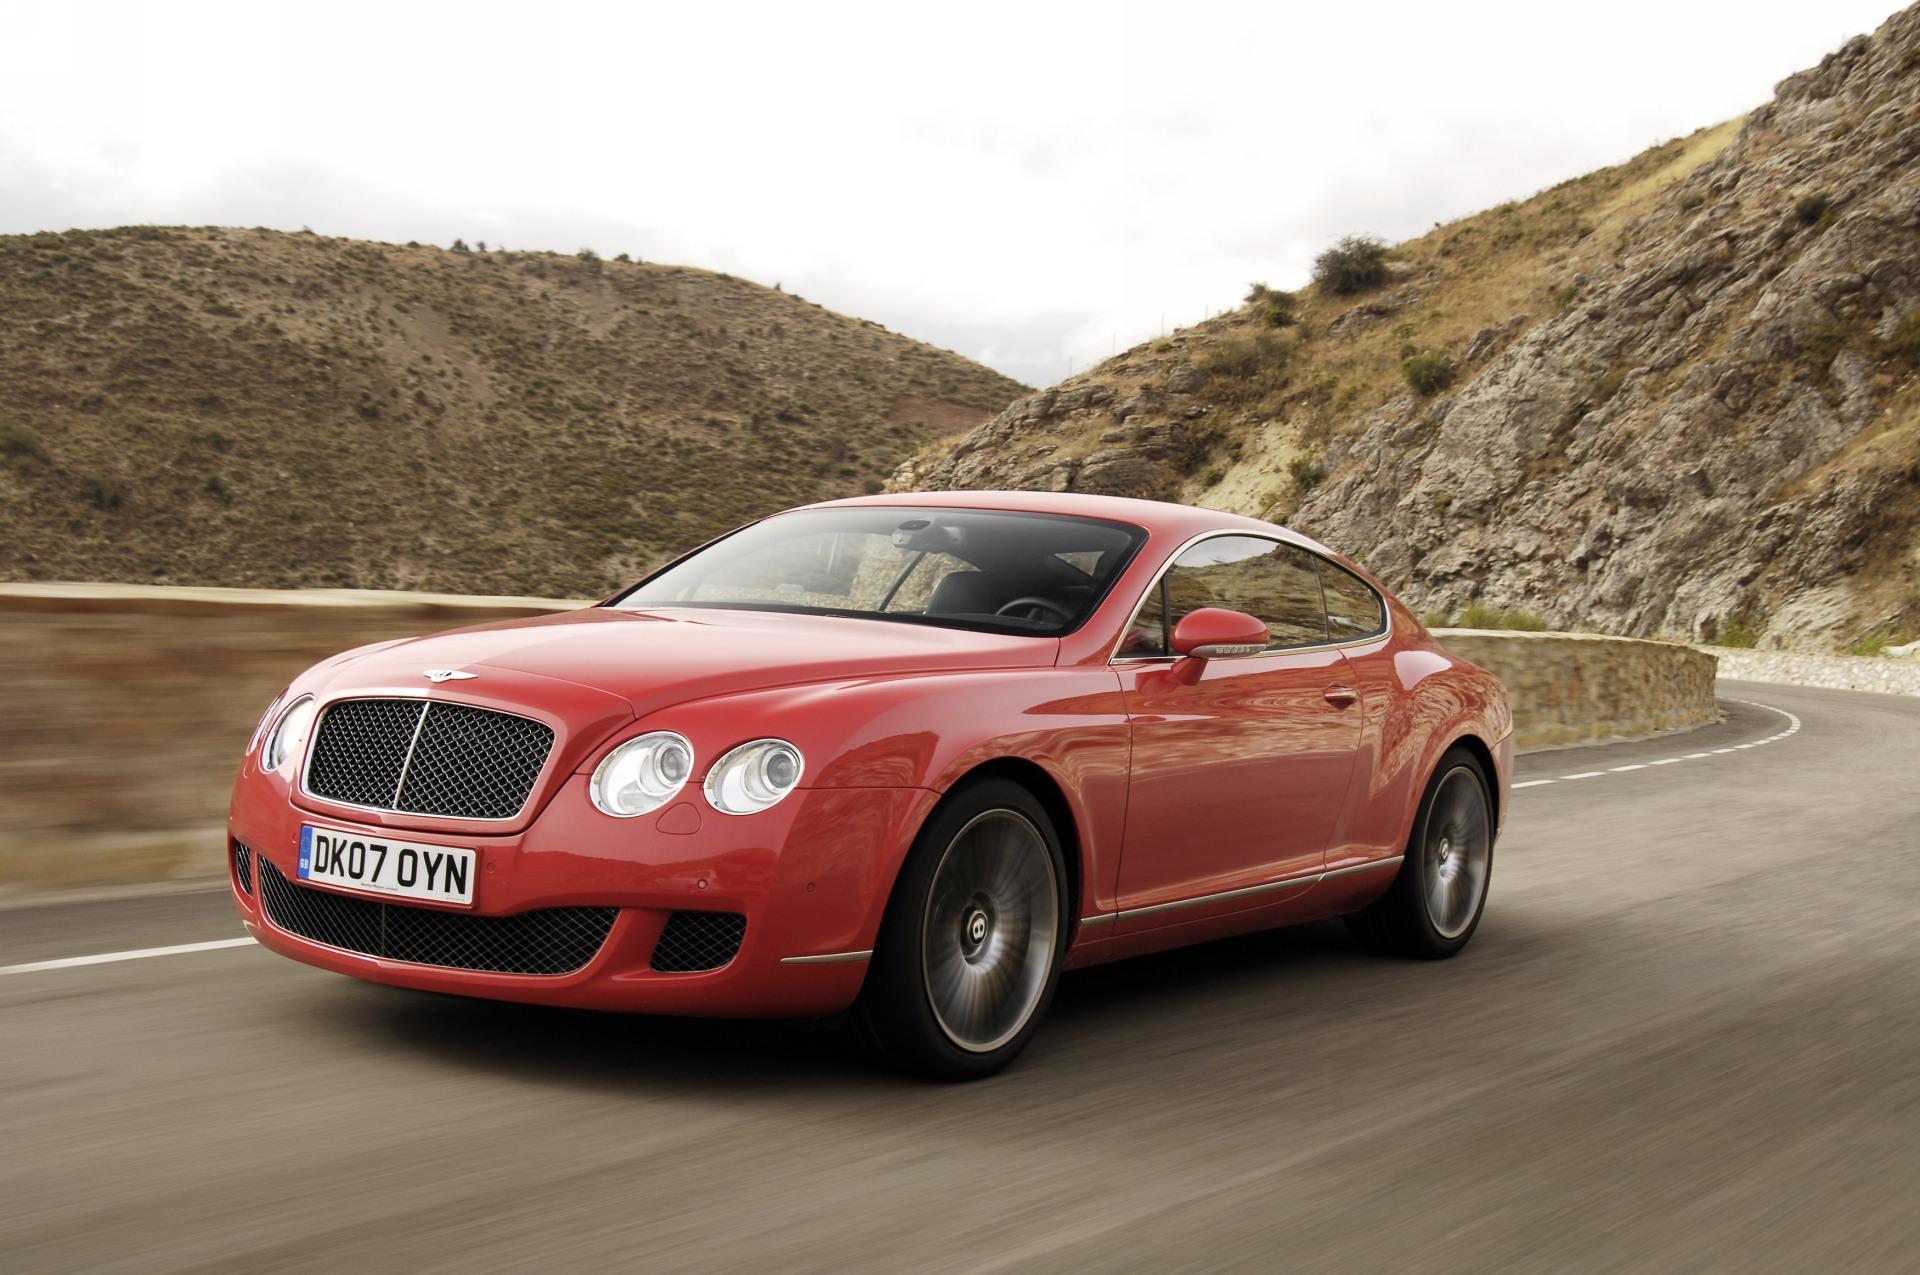 2010 bentley continental gtc speed information and photos bentley continental gtc speed 2010 1 vanachro Image collections